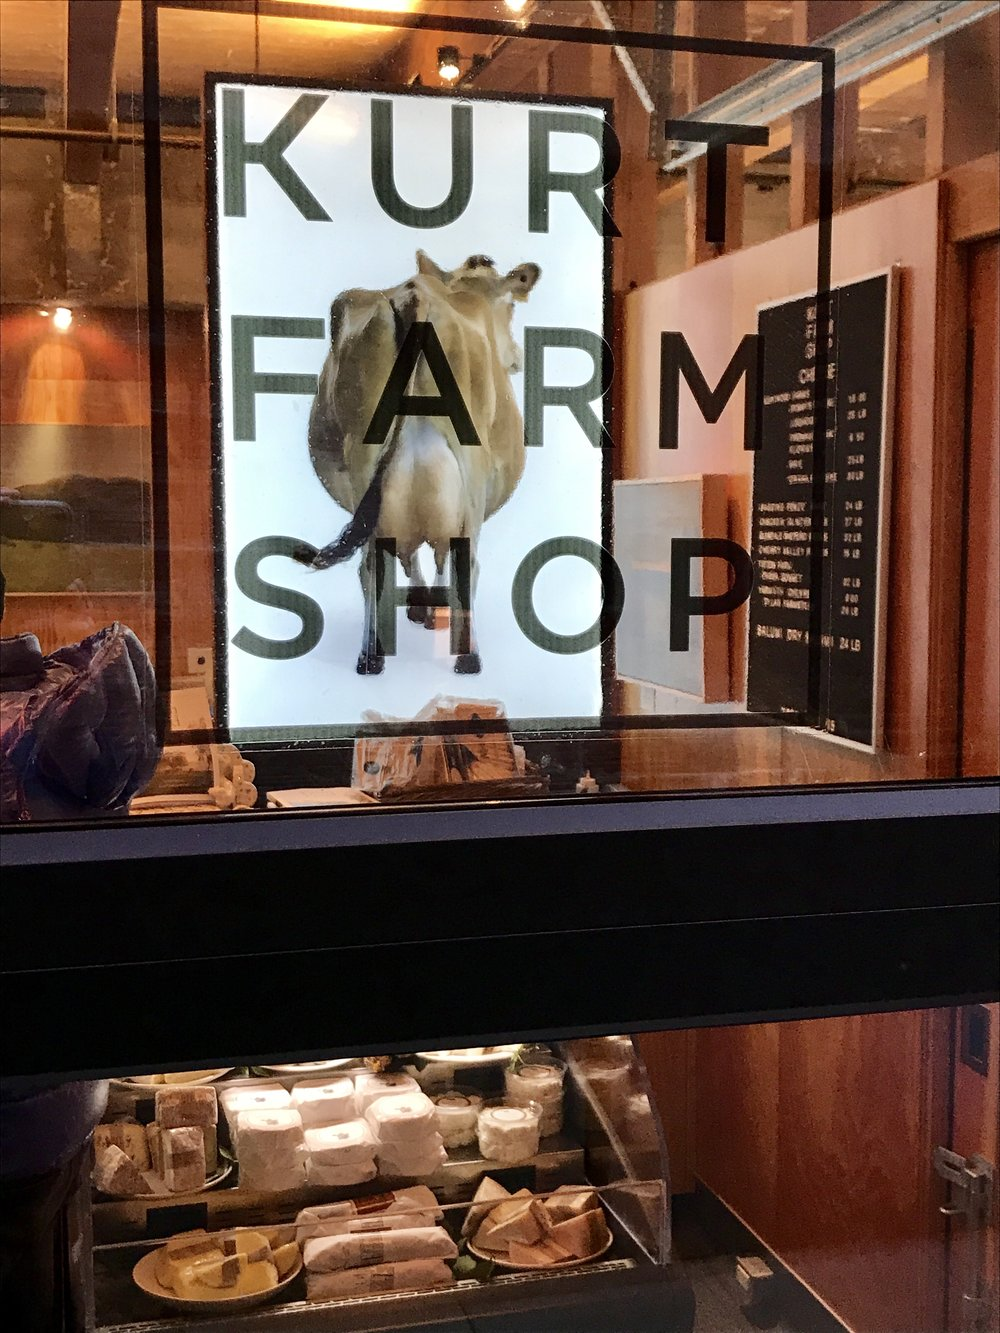 Cap Hill_Kurt Farm Shop.jpg